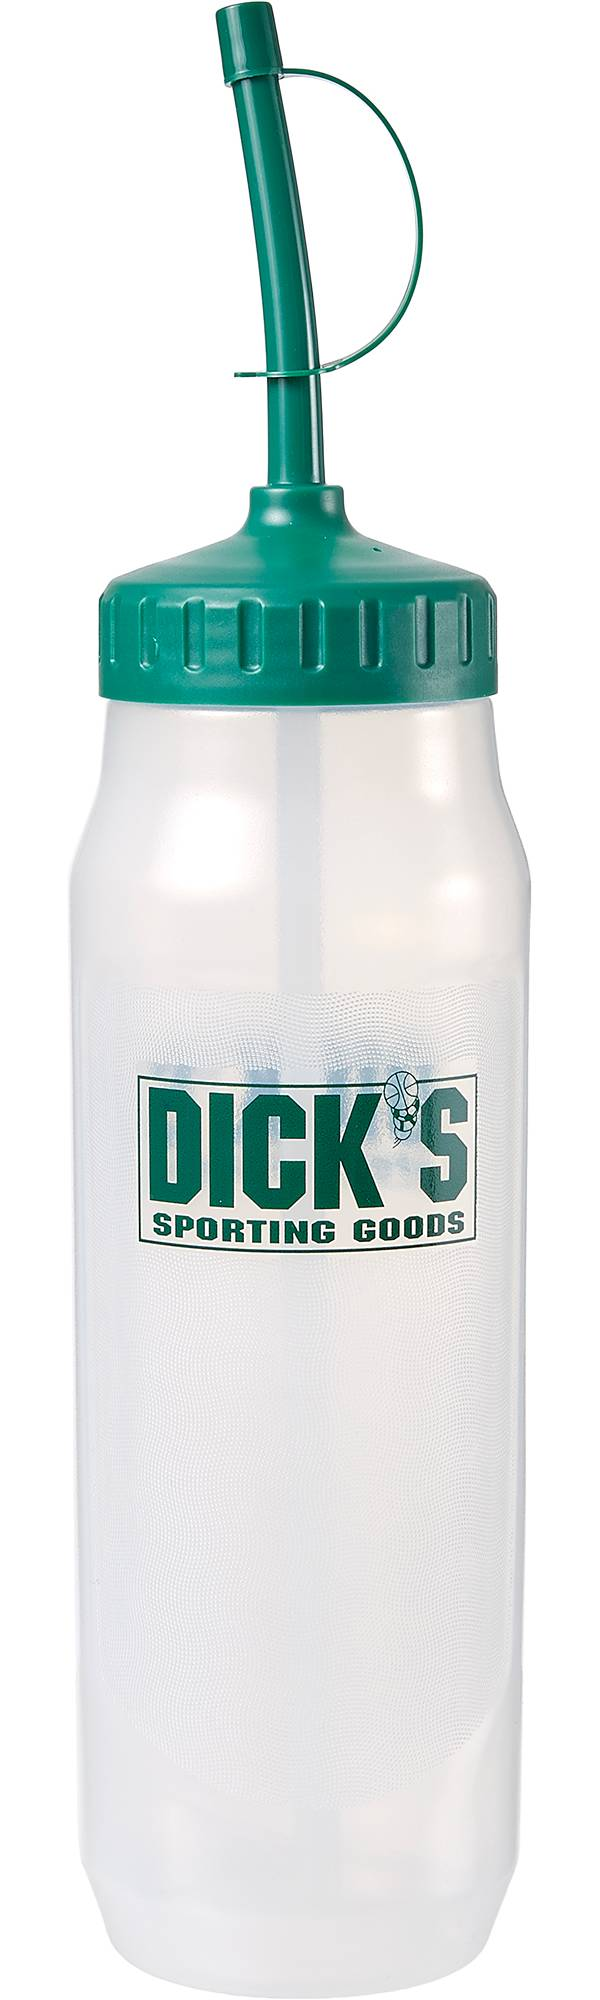 DICK'S Sporting Goods 32 oz. Straw Bottle product image